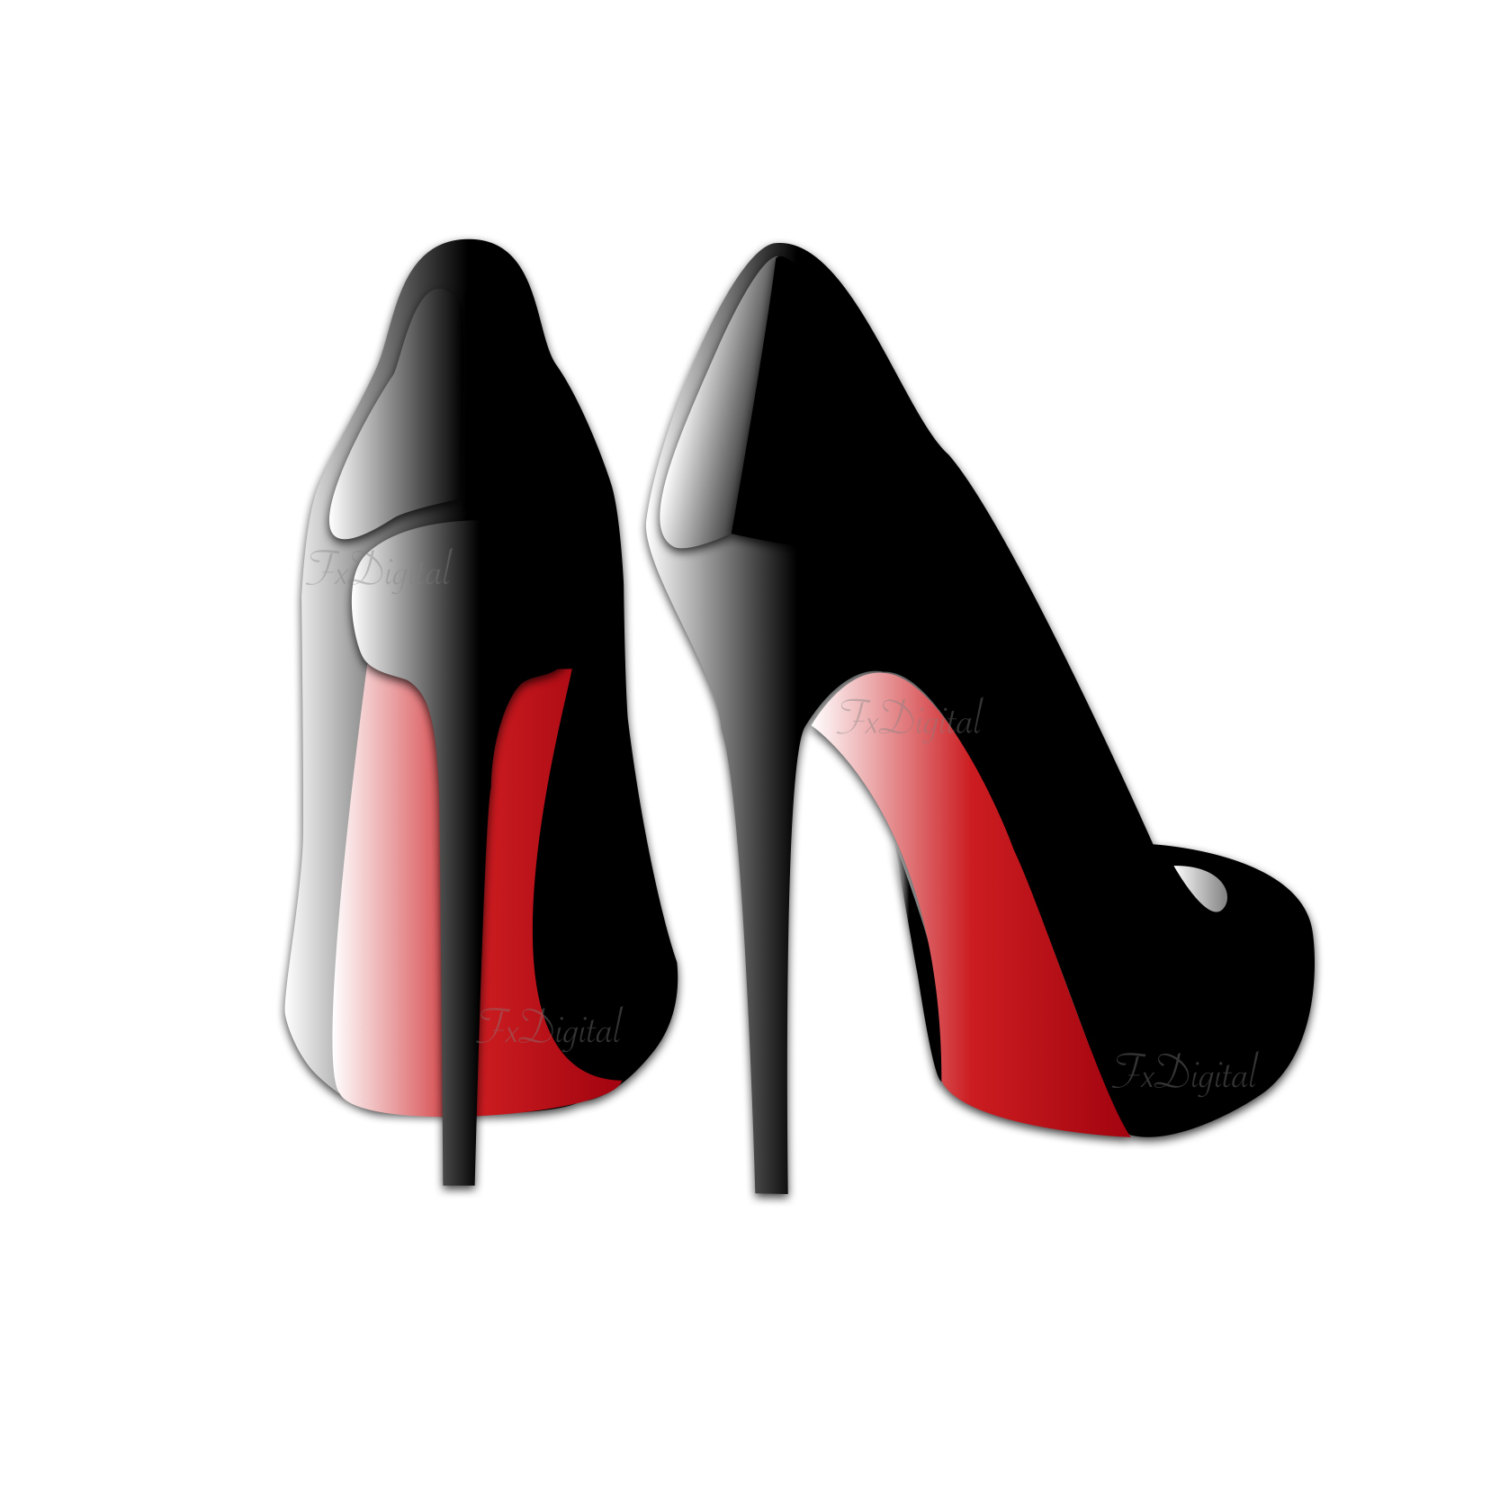 Red High Heels Clip Art - Sexy High Heels Graphic, Shoe Clip Art, Black Heels Vector, High Heels Transparent Background Image, Shoe Logo